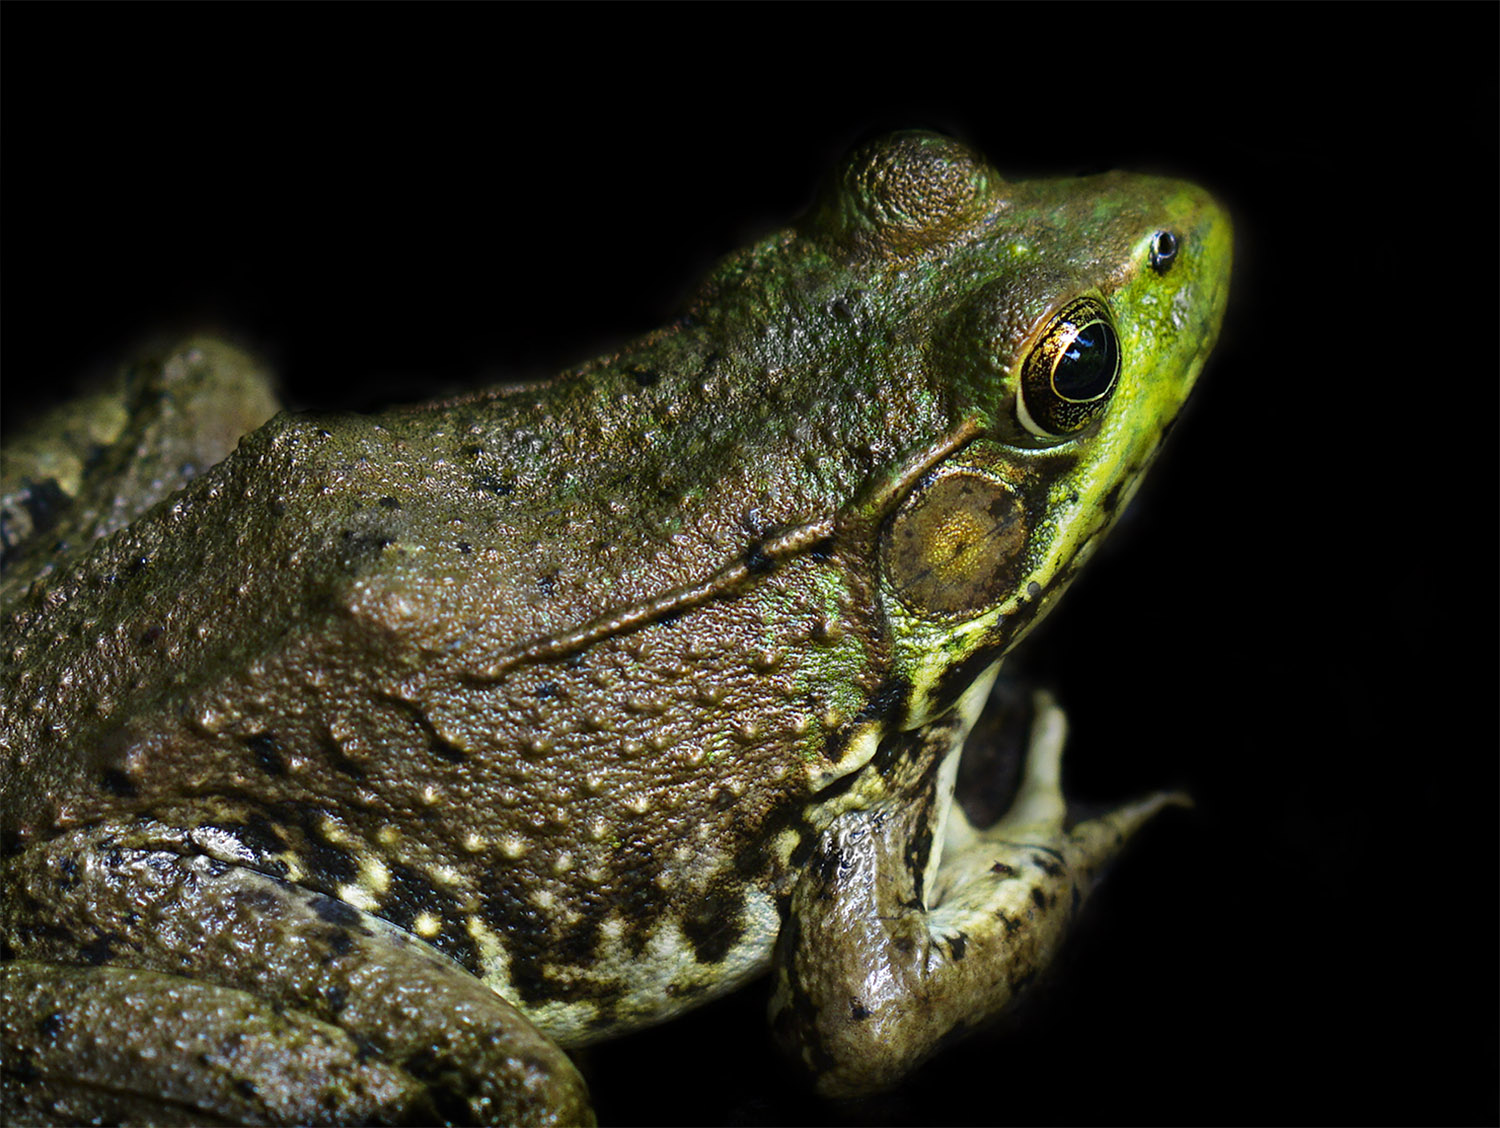 10. frog pose, by k. bos